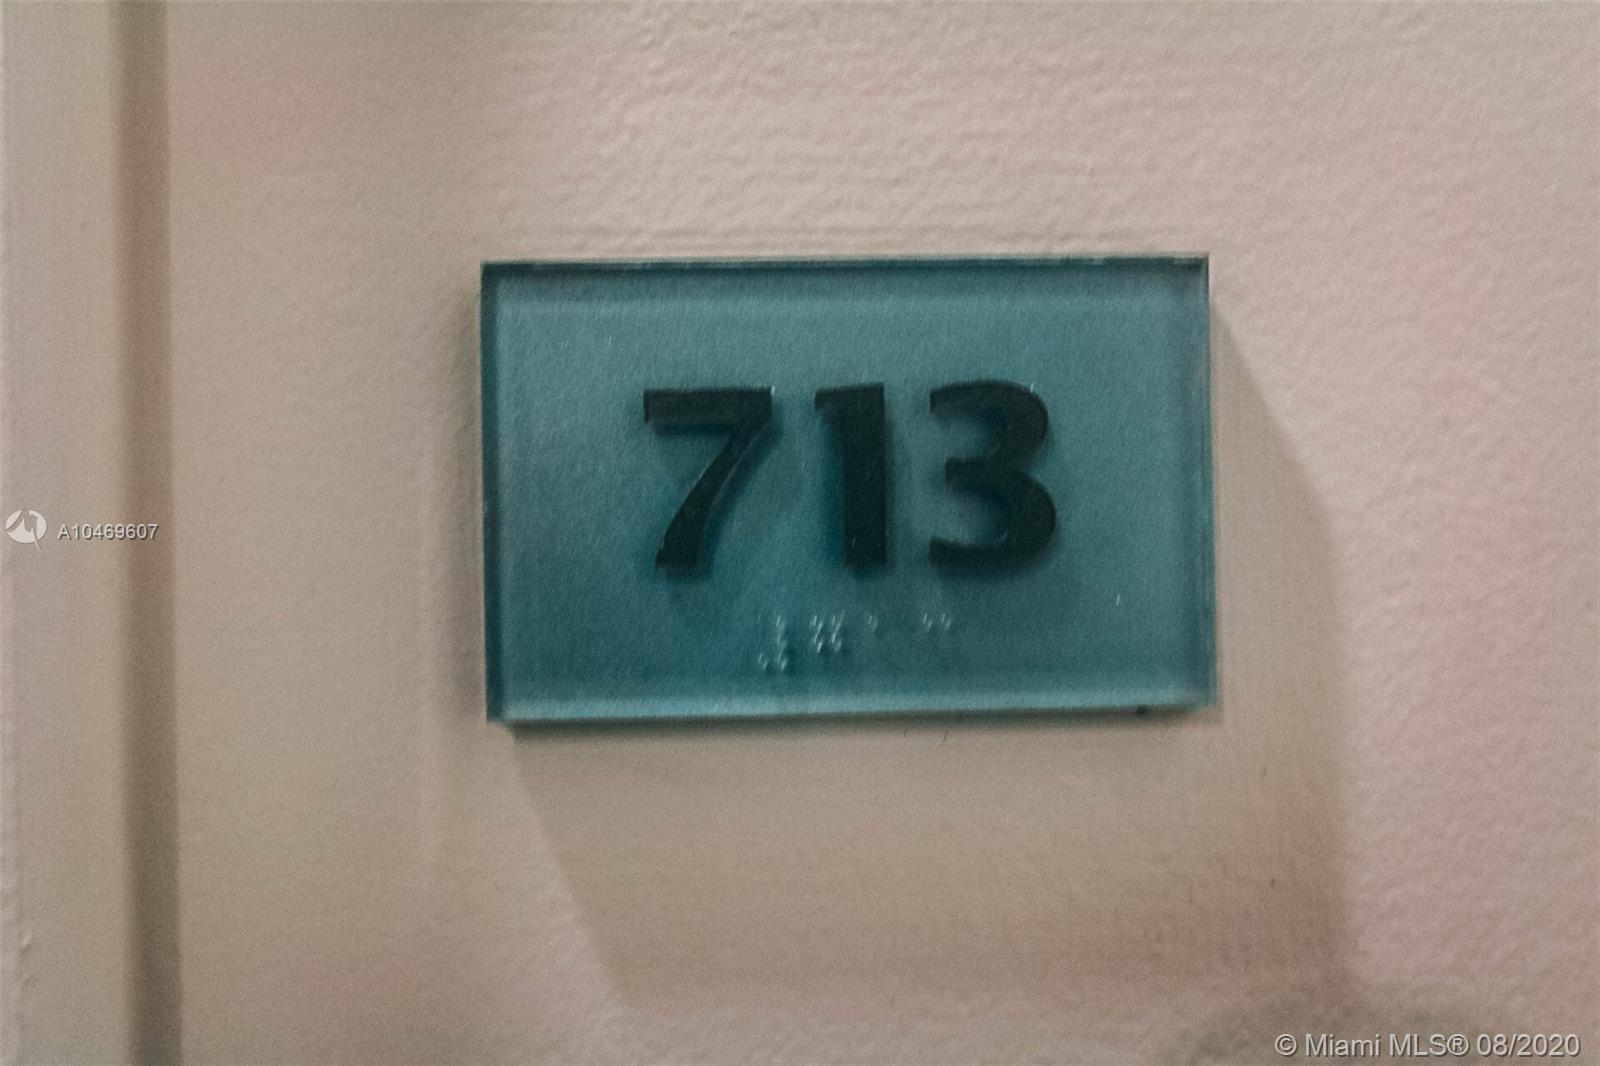 City 24 #713 - 350 NE 24 St #713, Miami, FL 33137